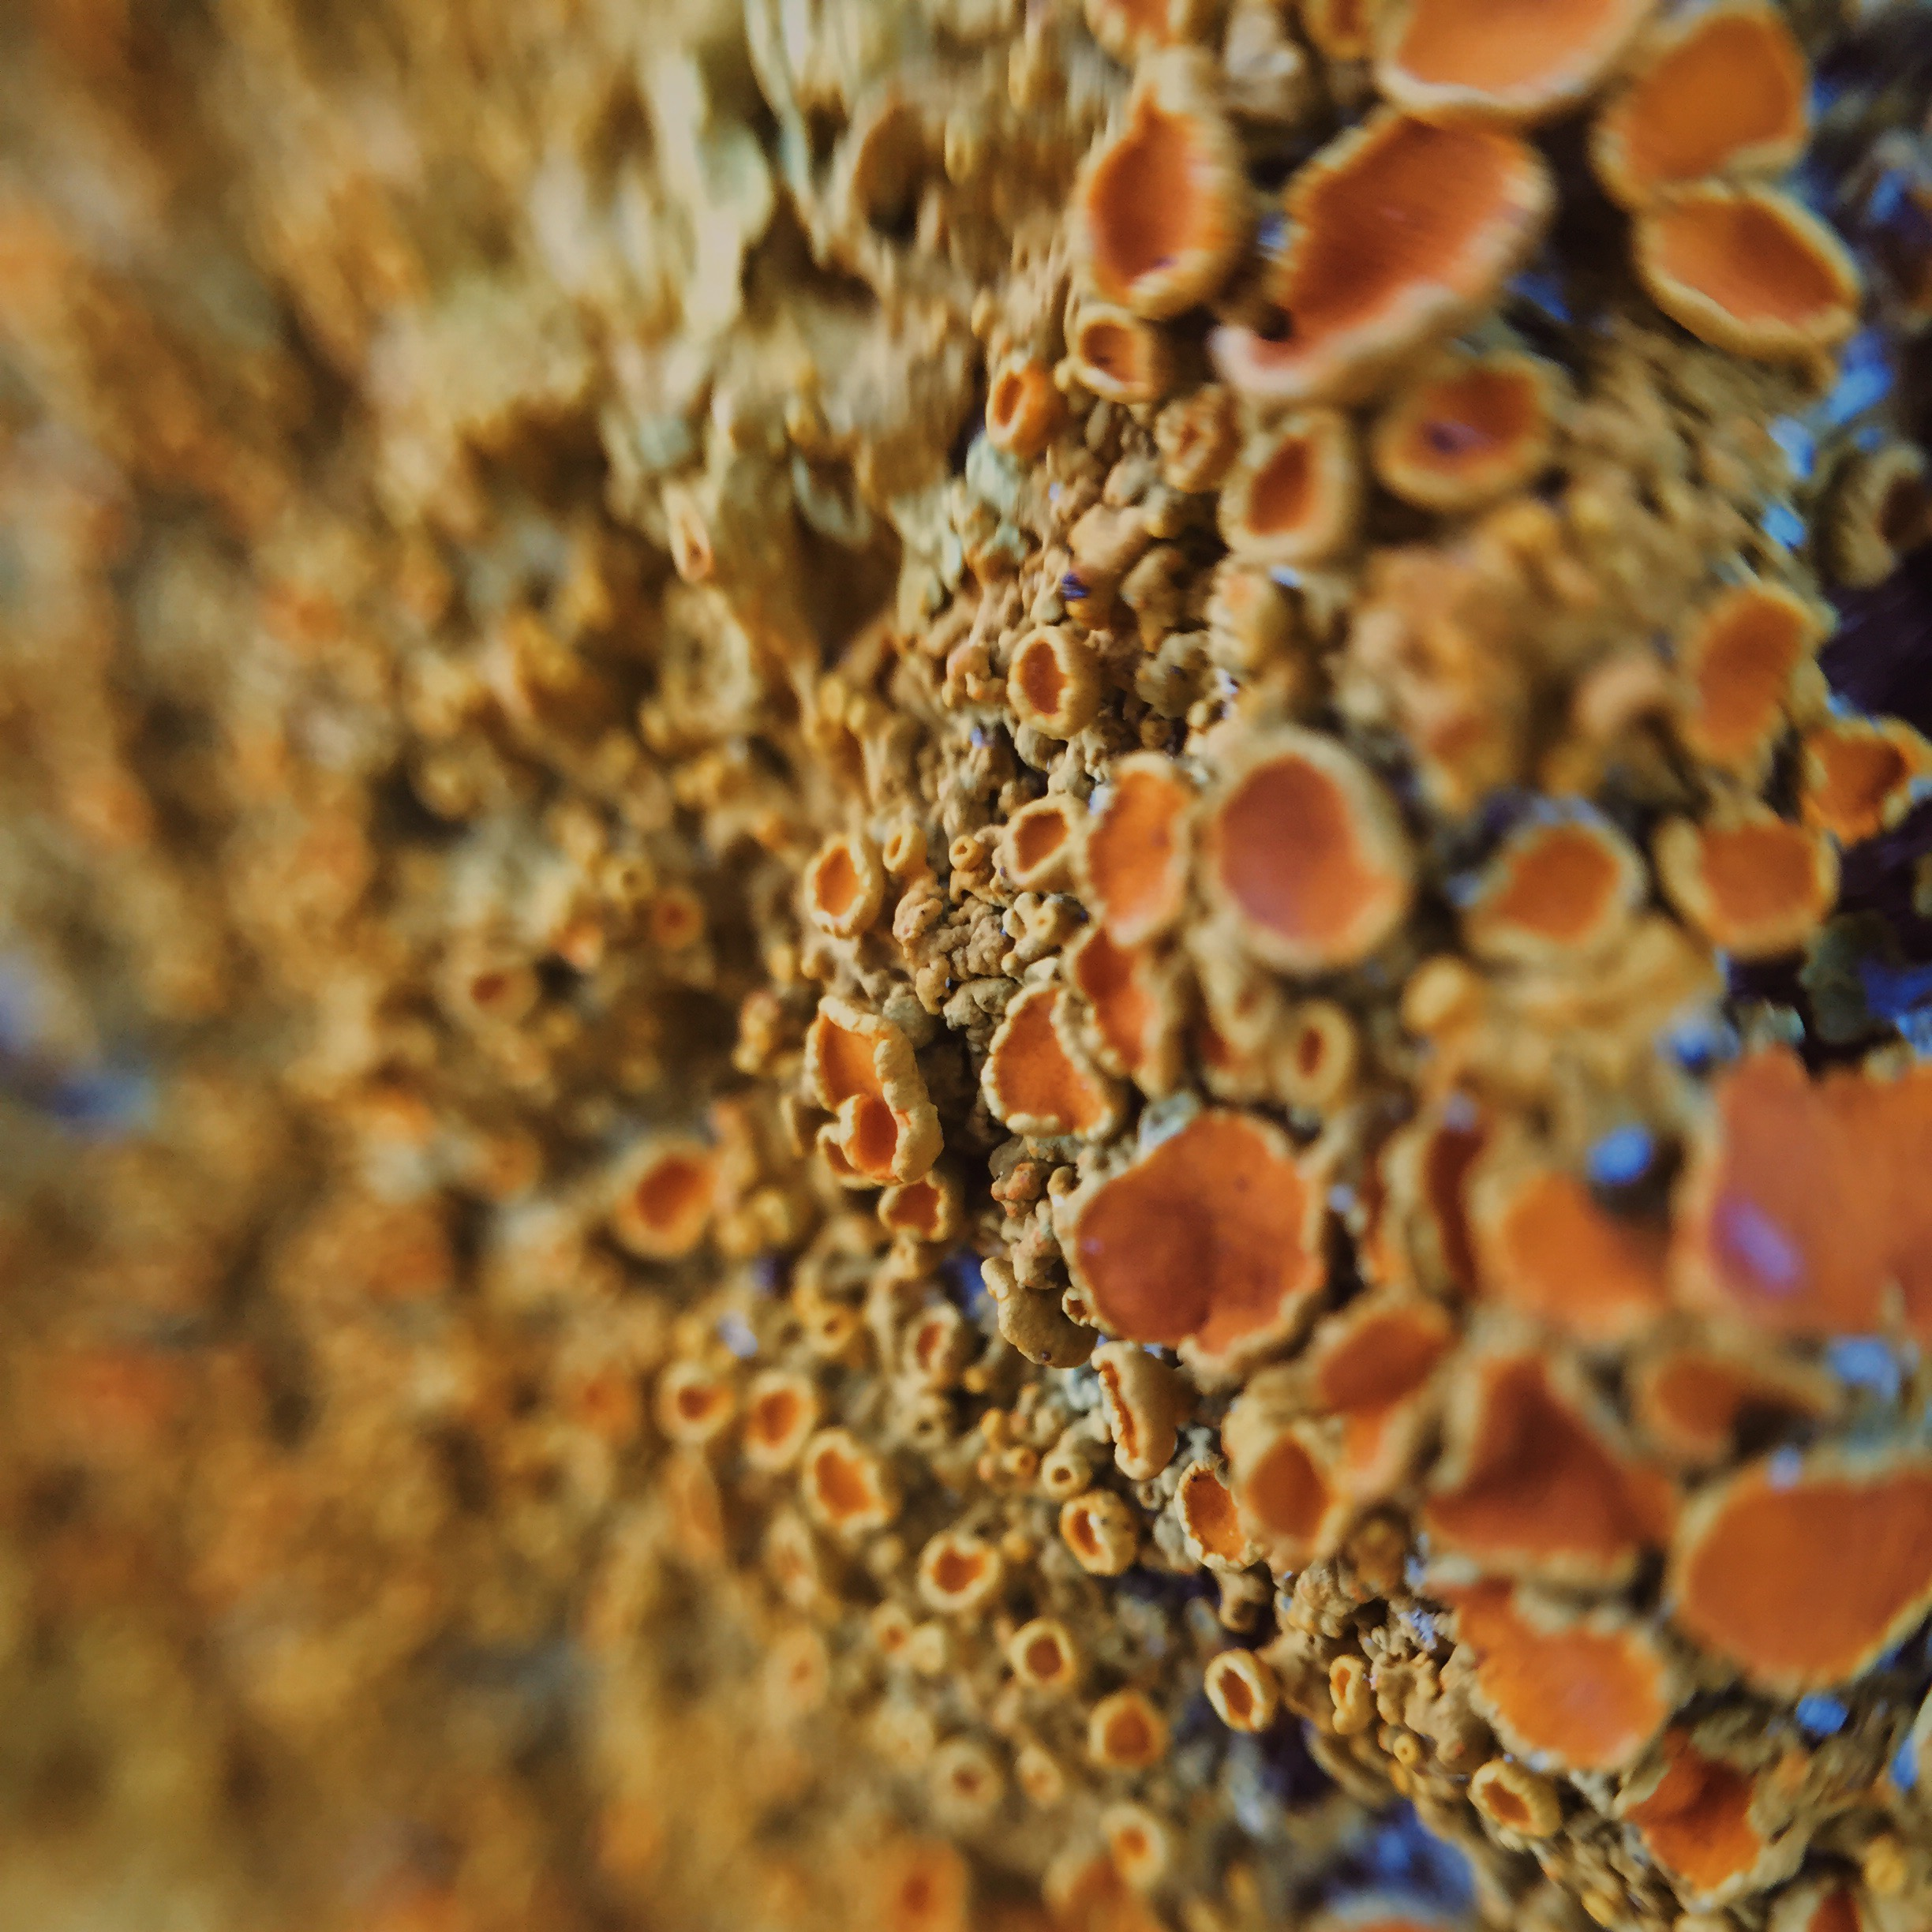 This is what Lichen looks like close up.